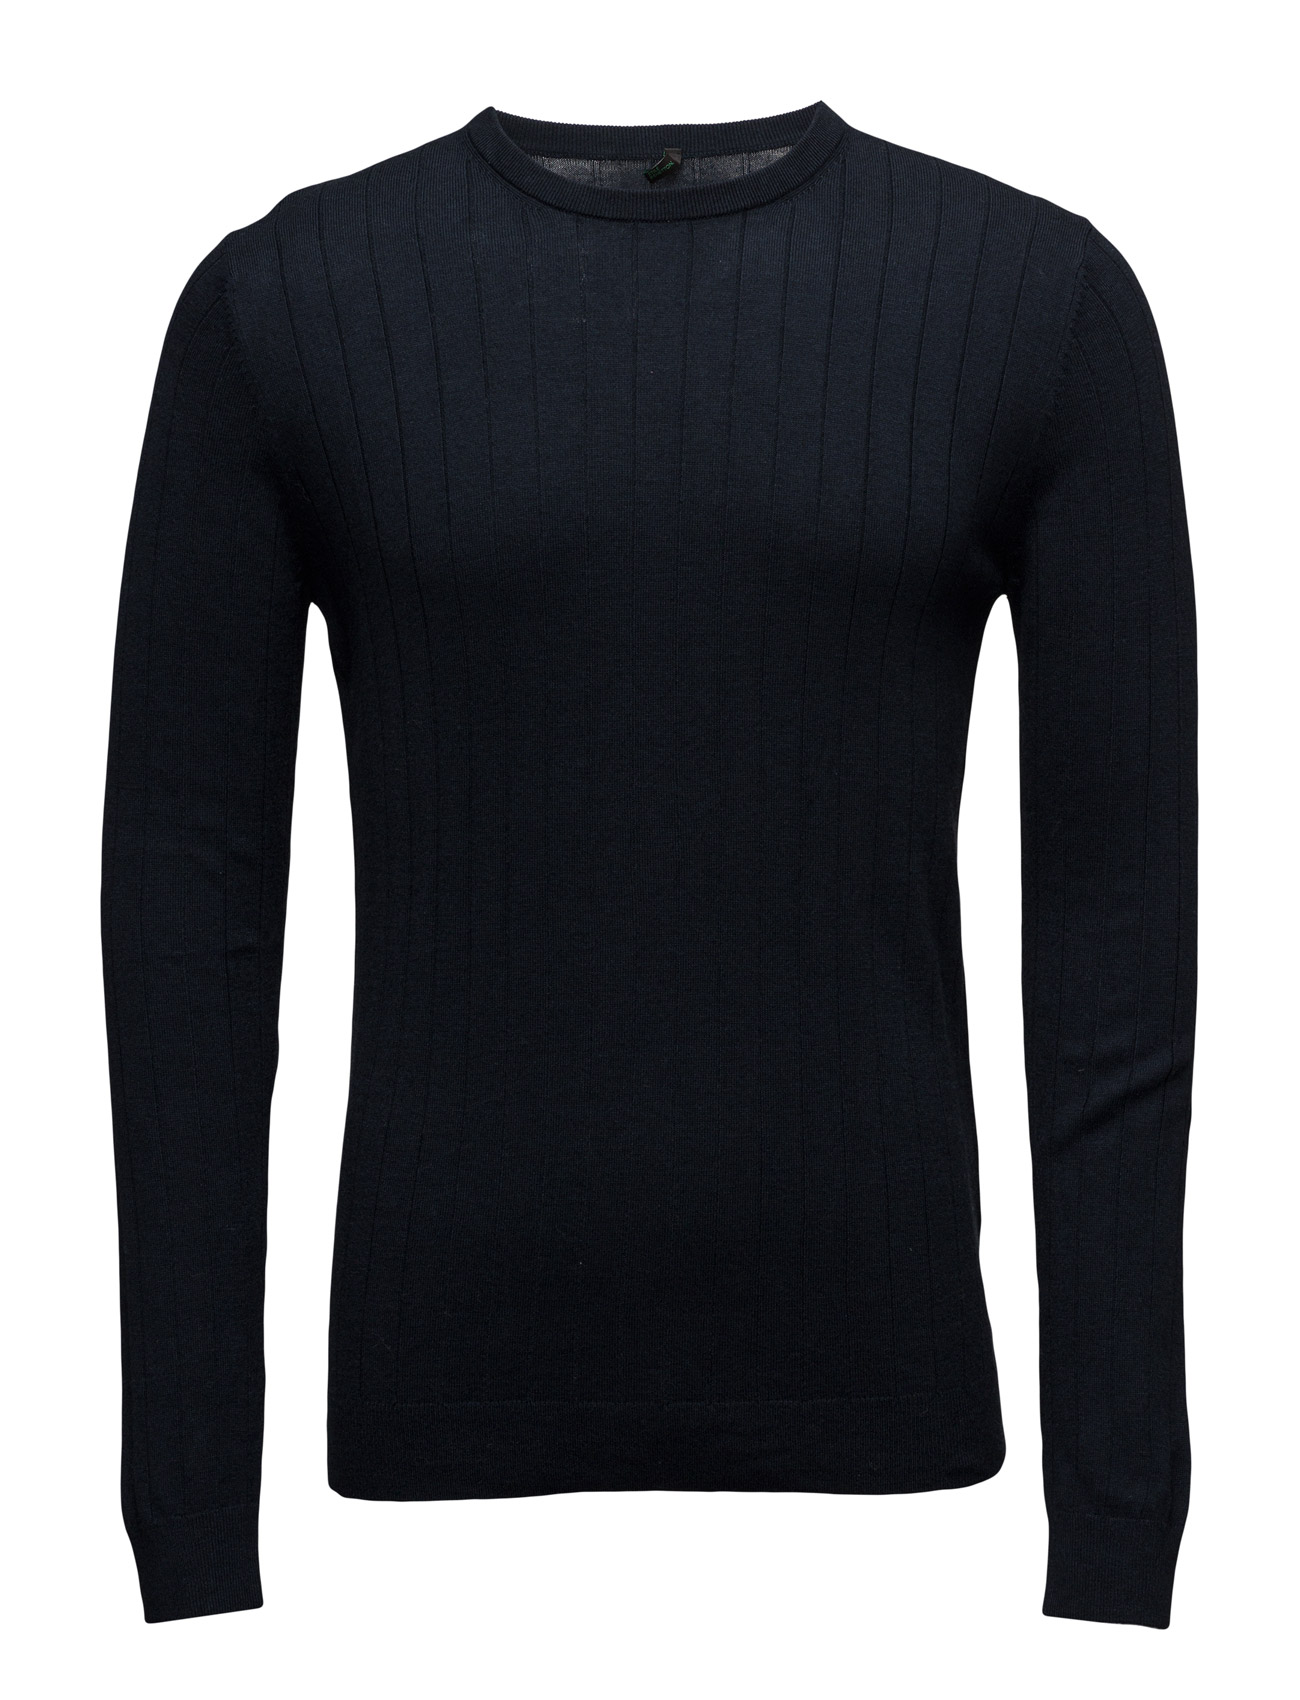 Sweater L/S United Colors of Benetton Striktøj til Mænd i